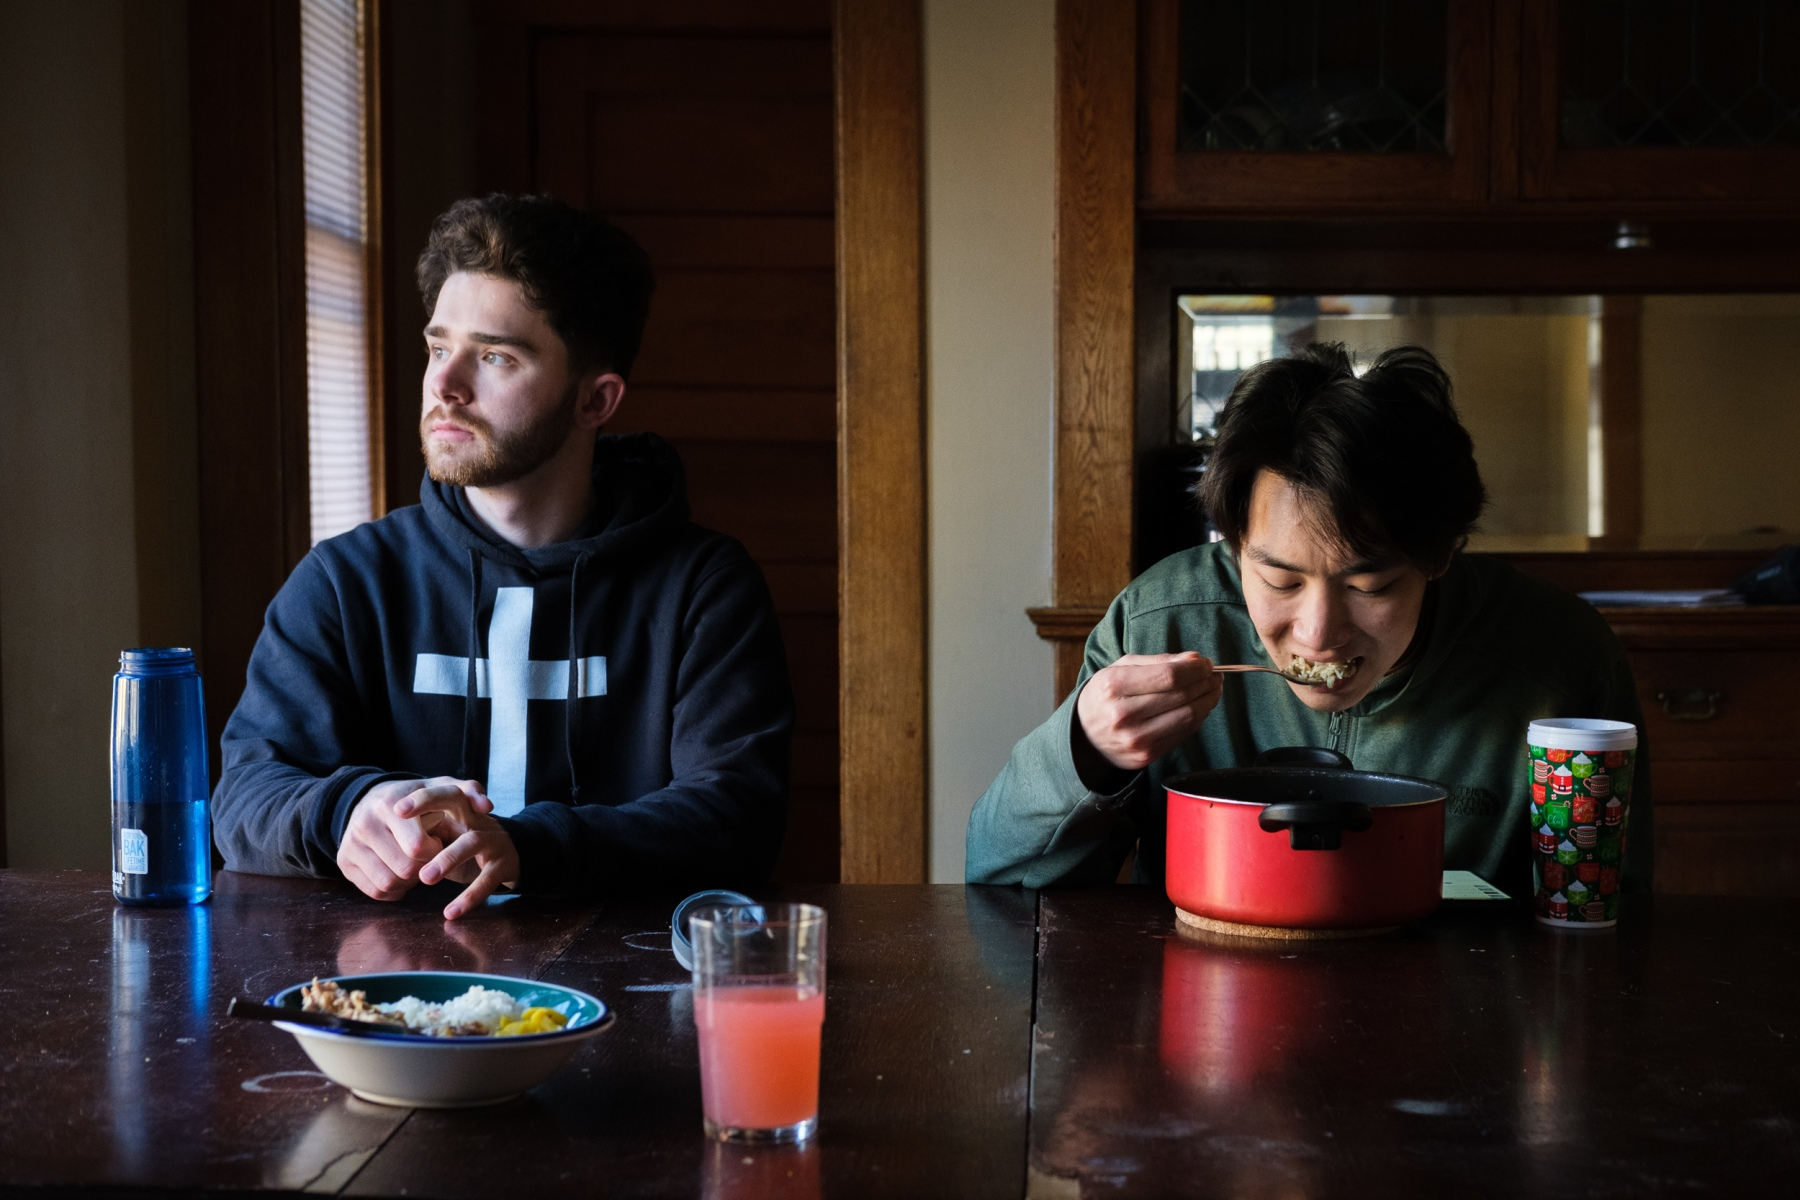 Macalester College student Ben Harney (left) contemplates returning home to Vermont amid rising coronavirus cases in Minnesota as he and housemate, Tenzin Dothar (right), eat at the house dining room table on March 14, 2020.